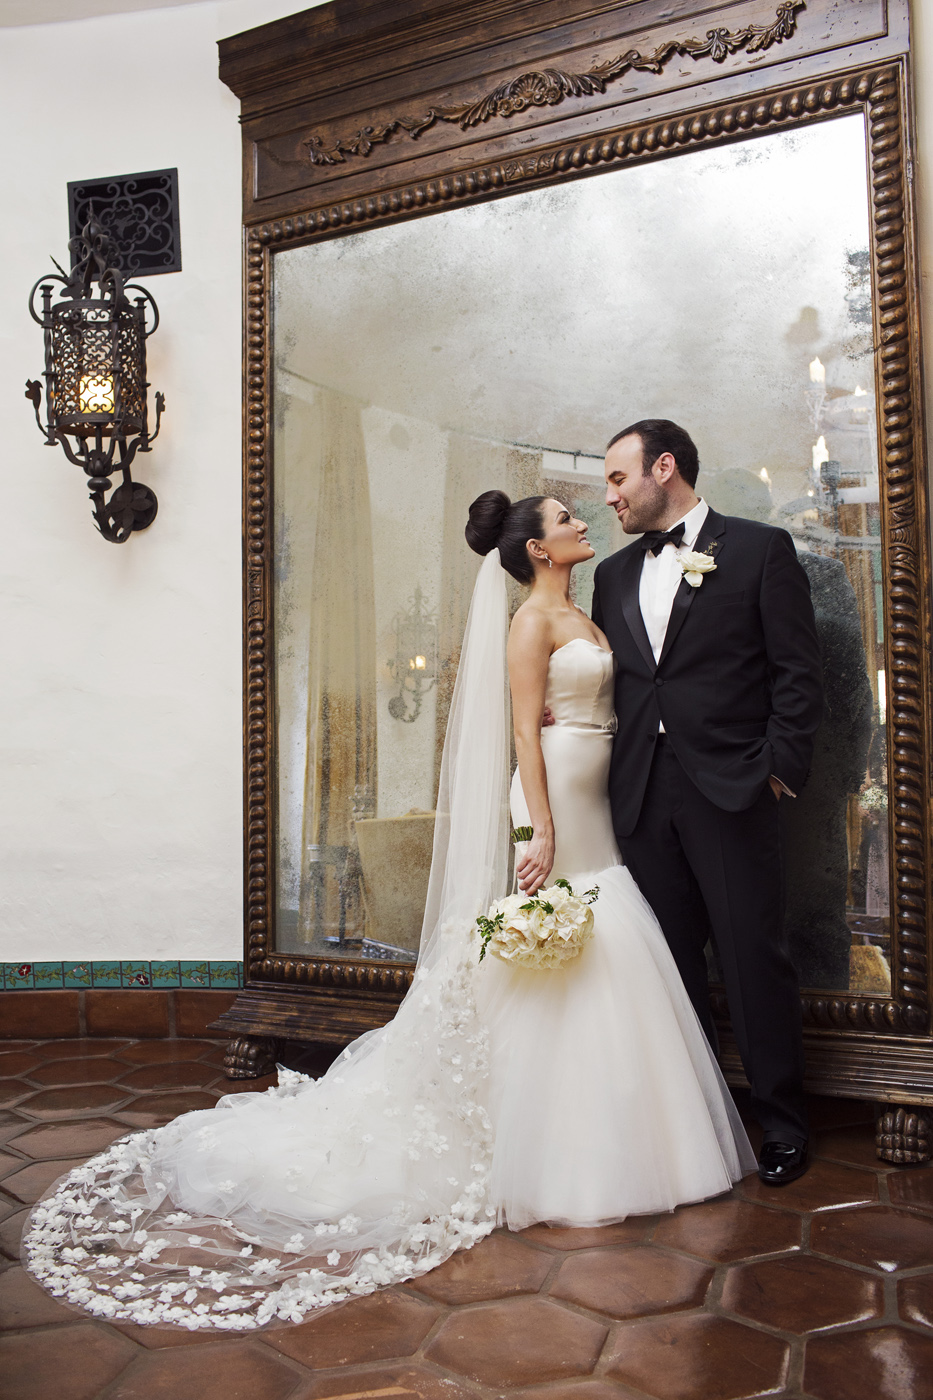 116DukePhotography_DukeImages_weddings_losangeles.jpg